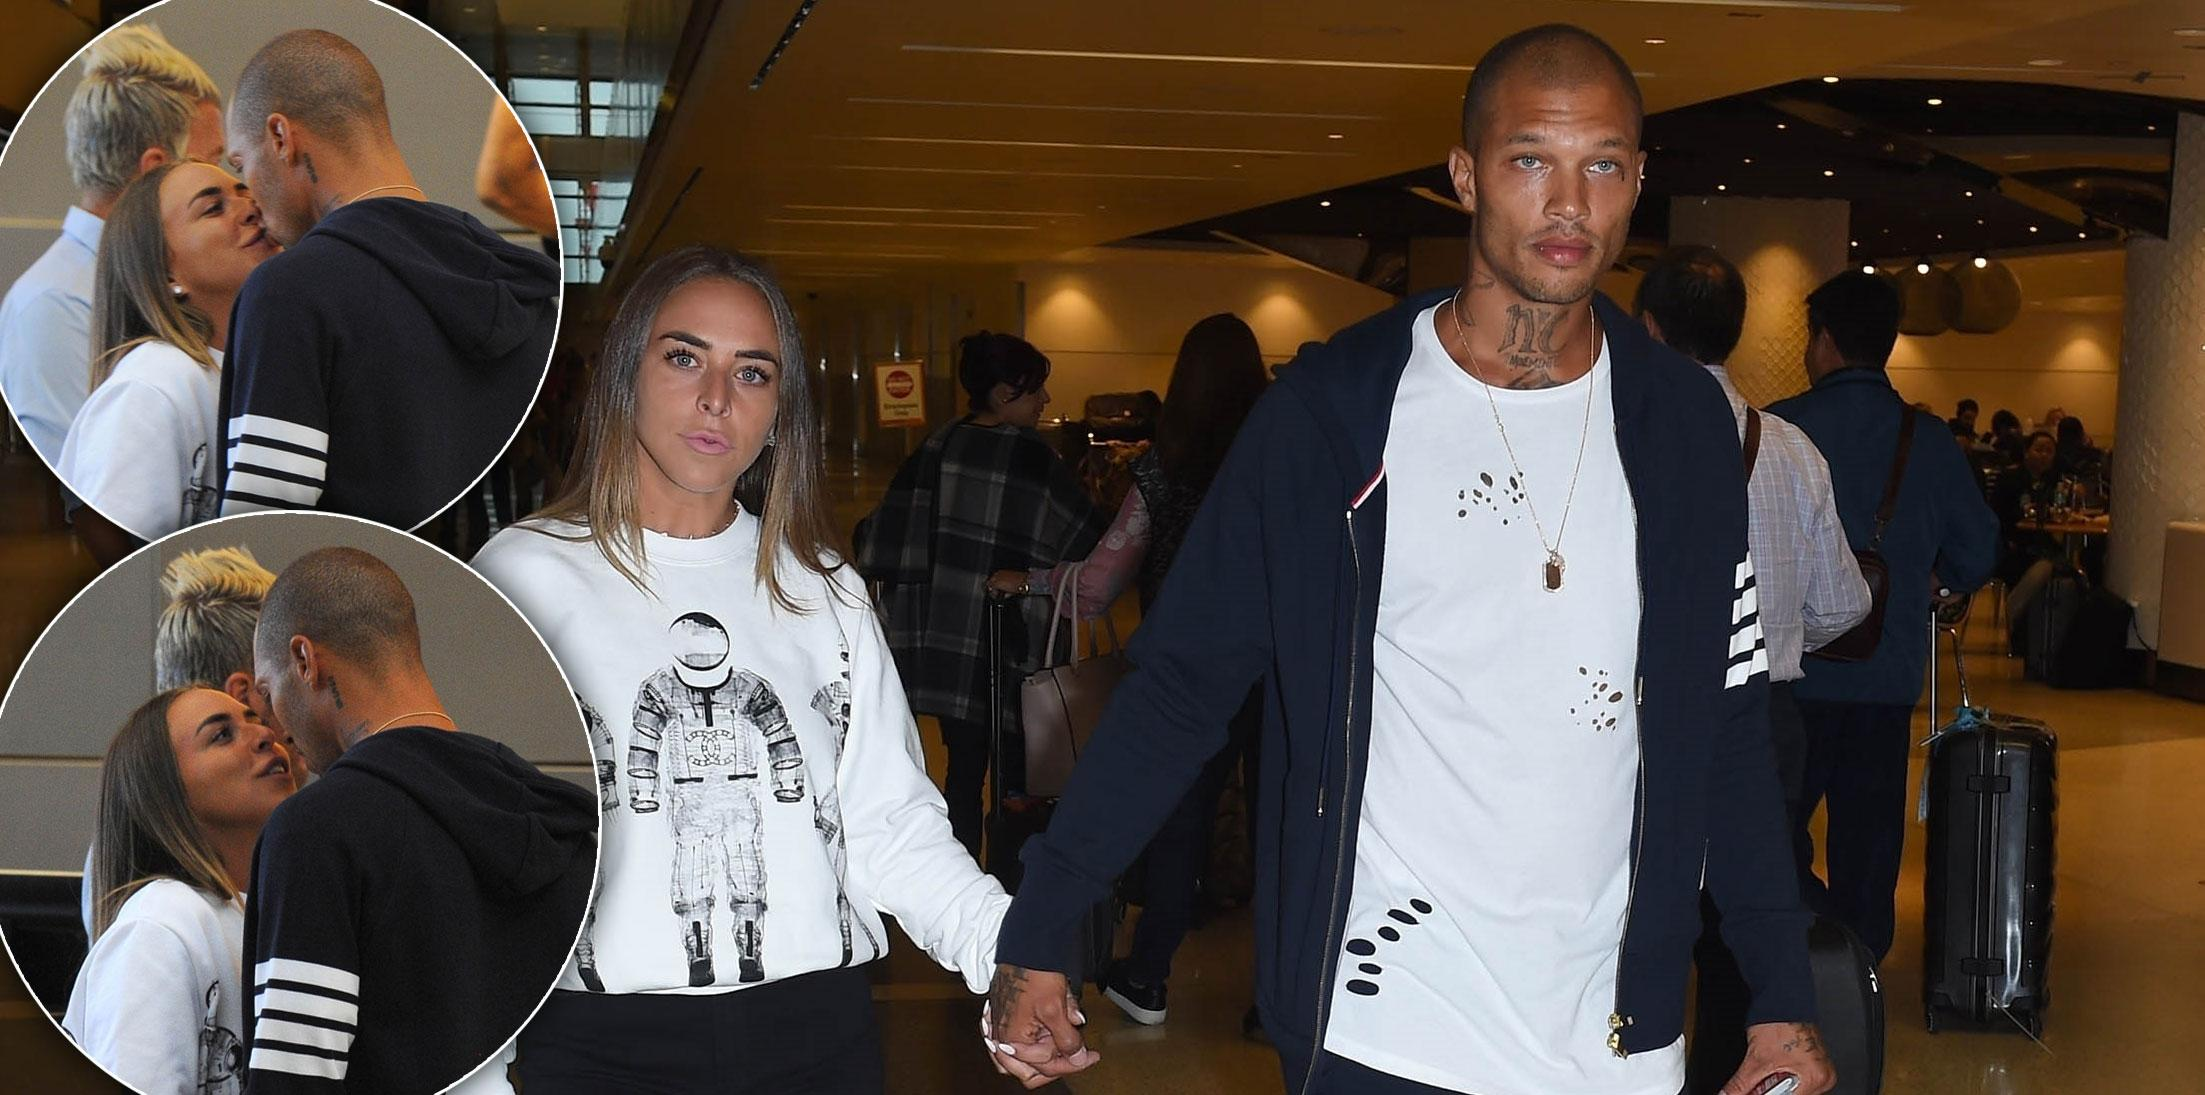 Chloe Green and Jeremy Meeks Jet To Israel